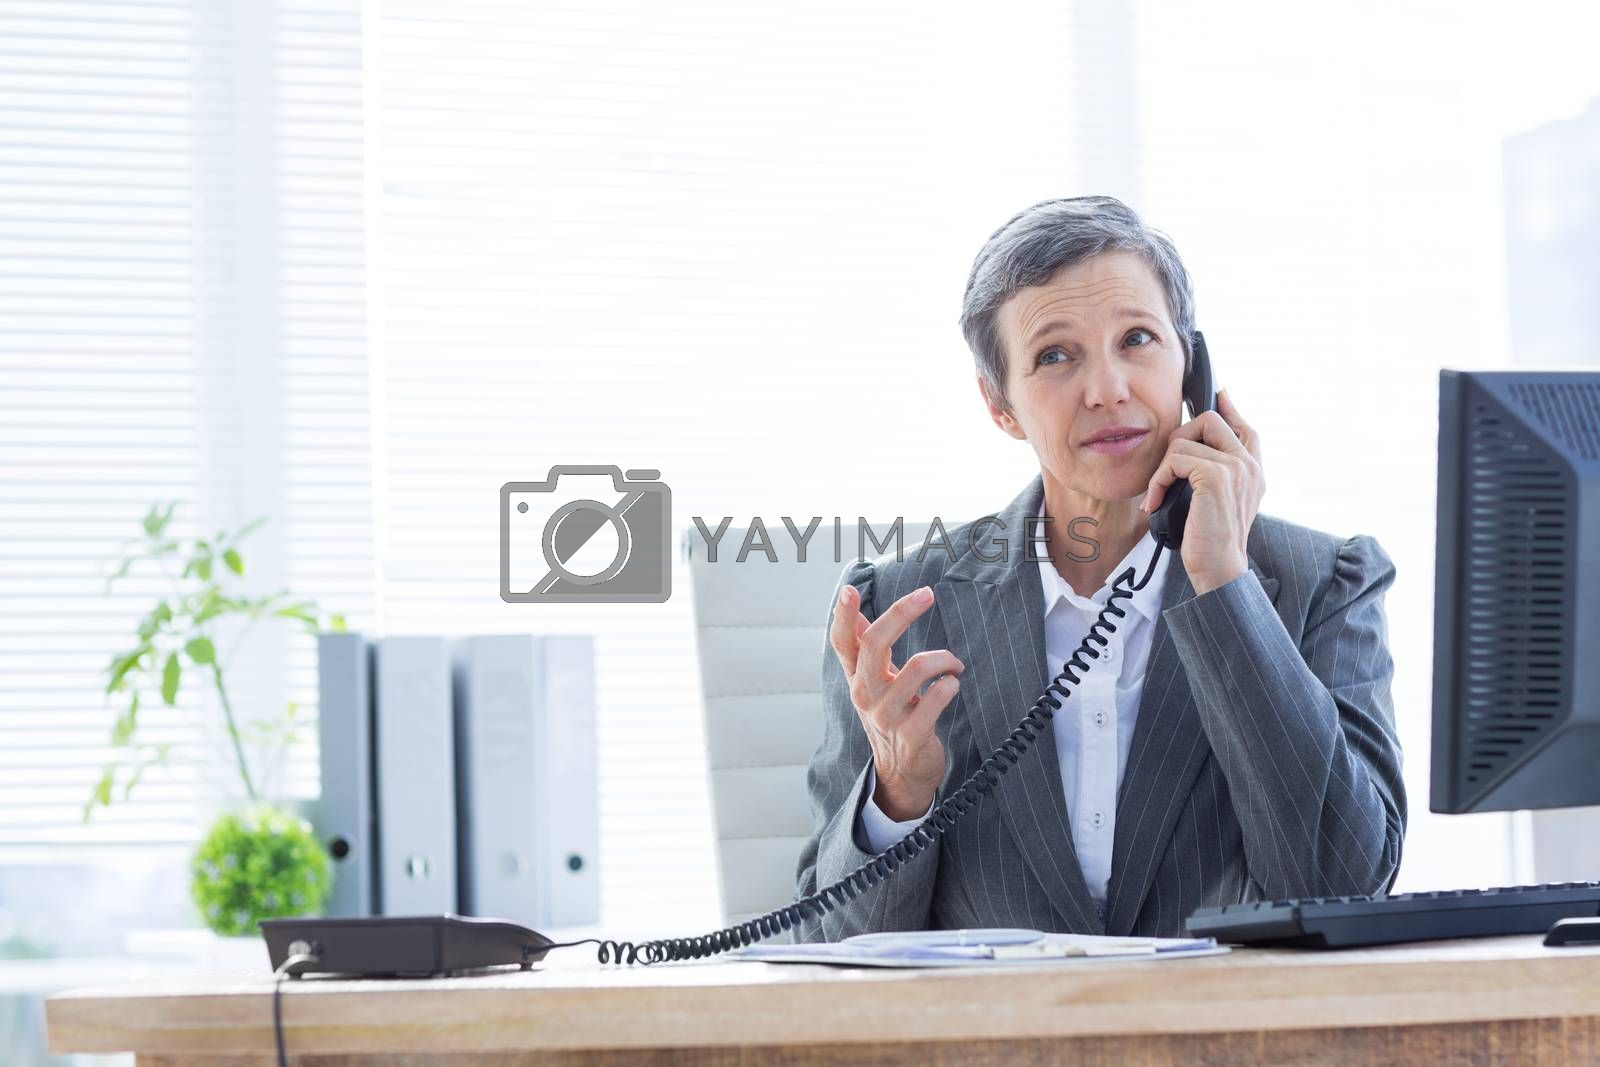 Royalty free image of Serious businesswoman phoning and using computer  by Wavebreakmedia